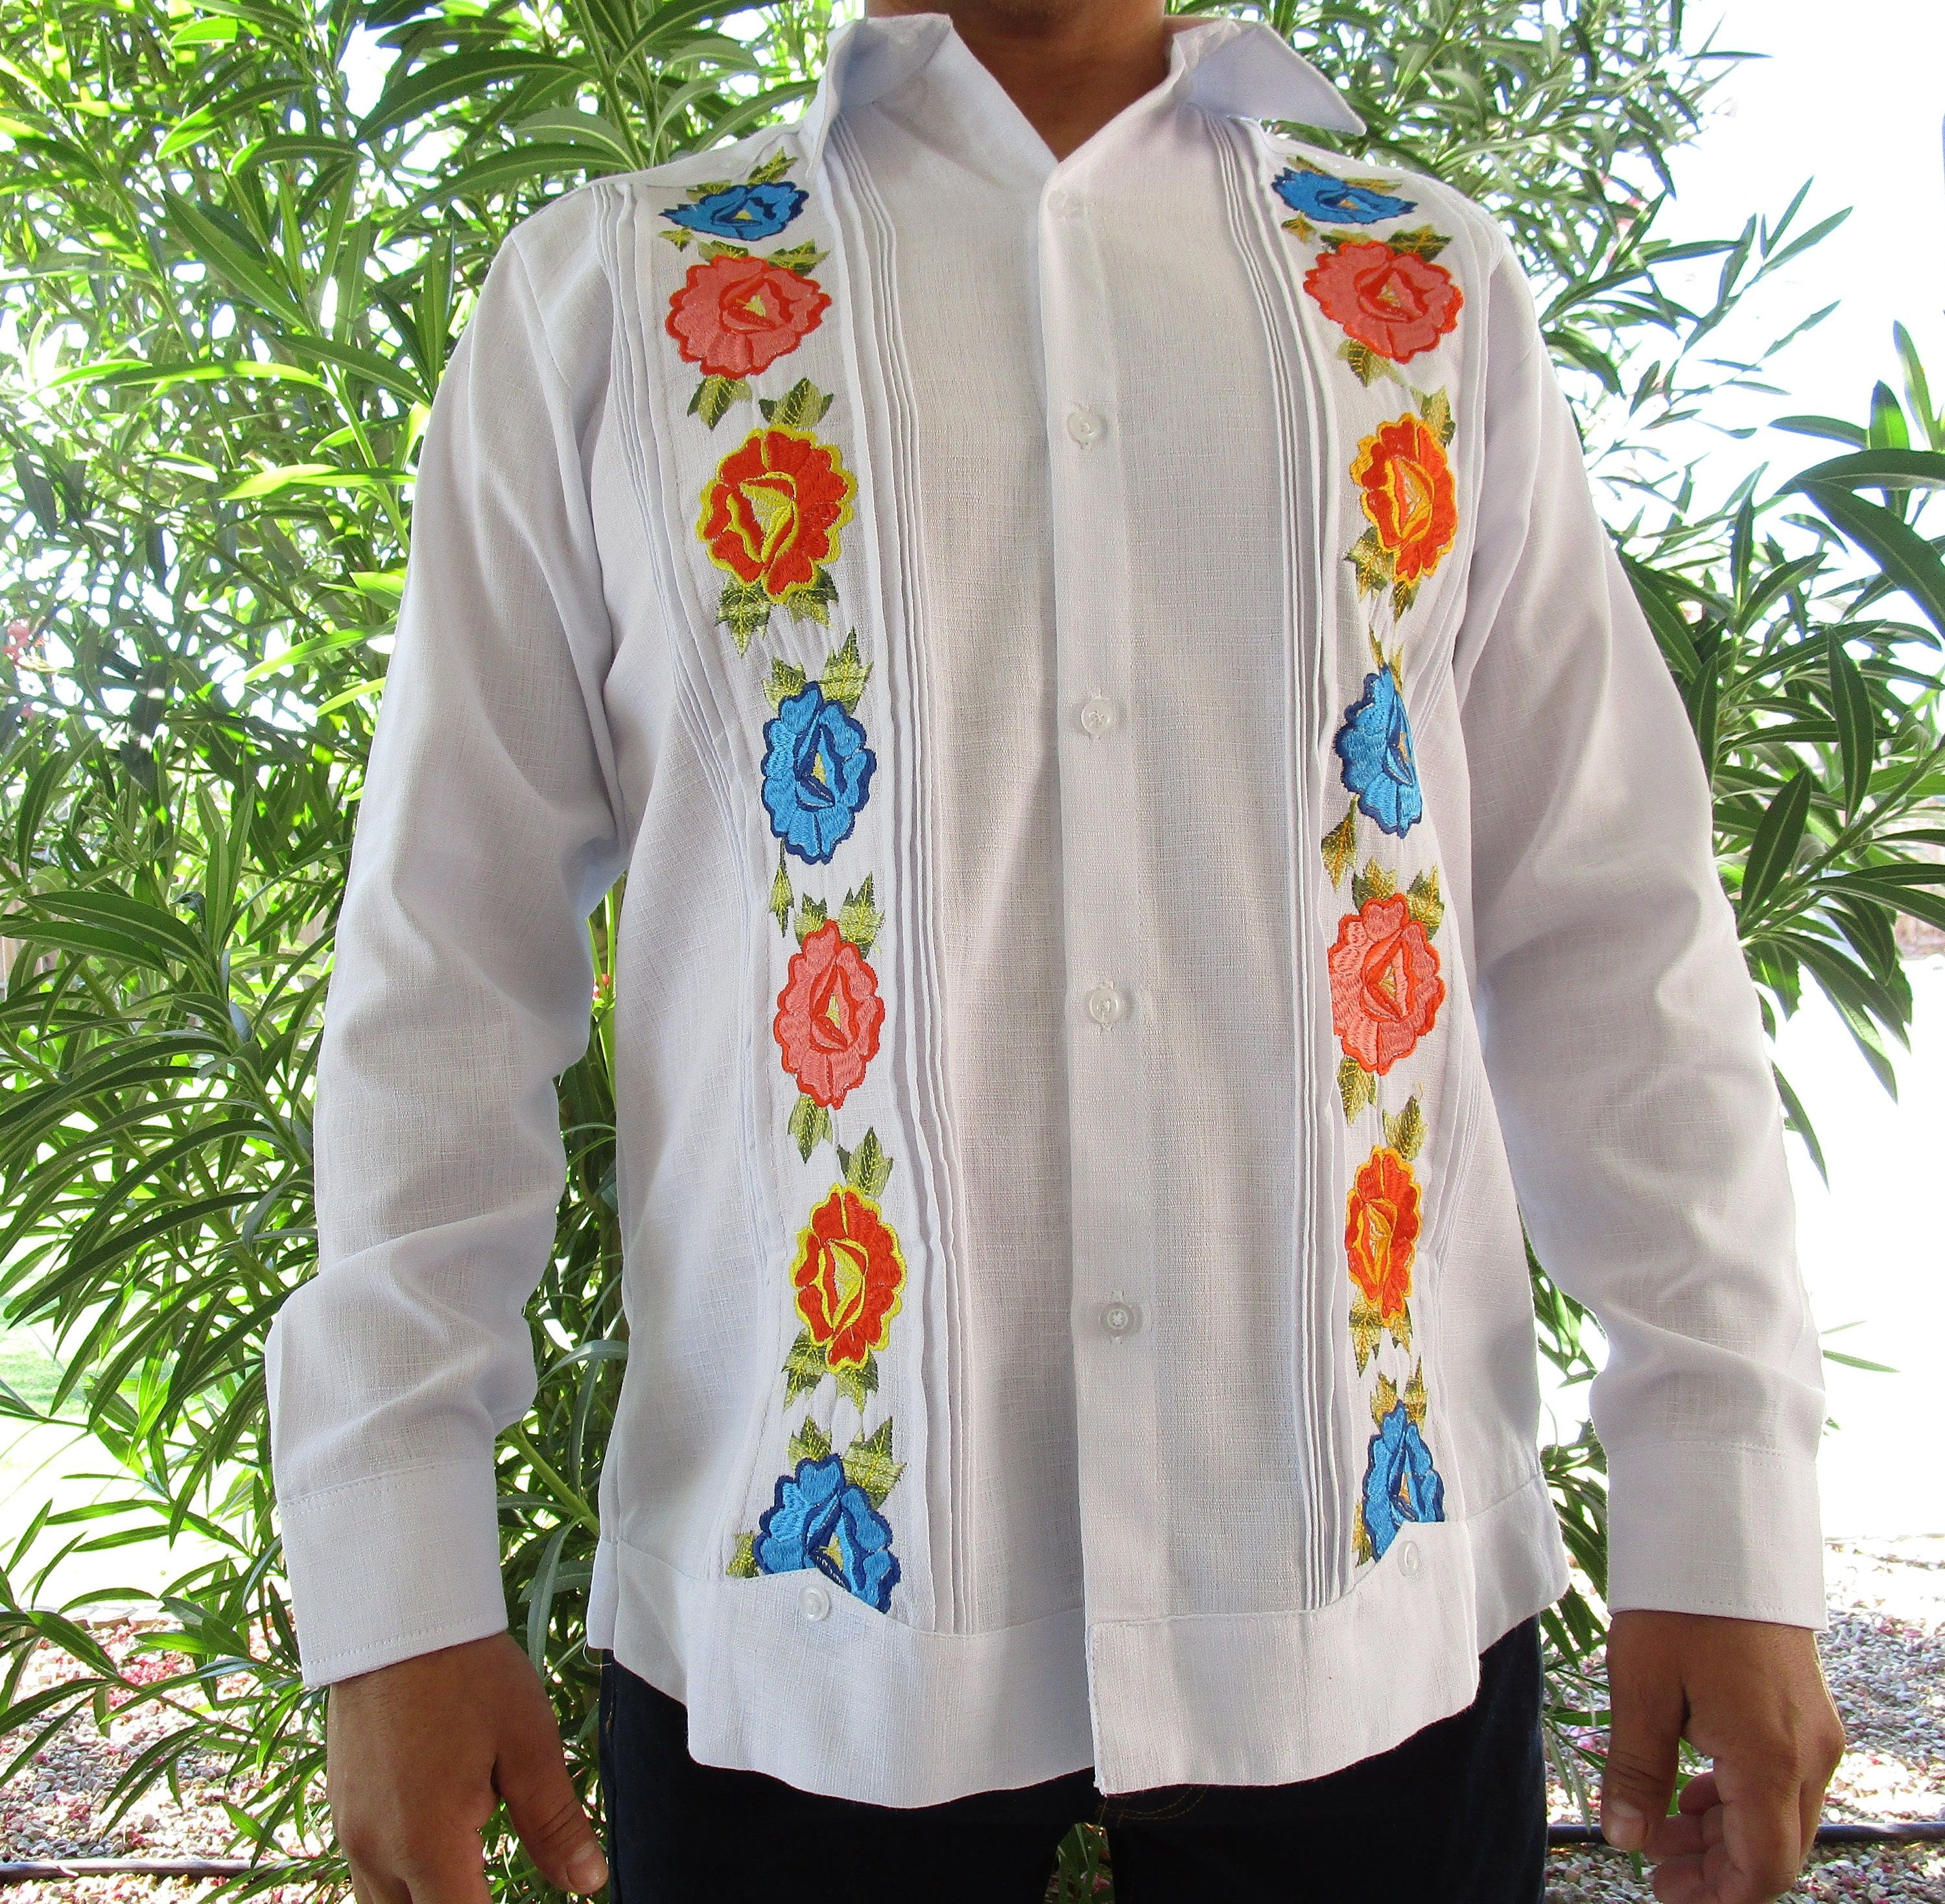 **I HAVE MORE MODELS AVAILABLE IF YOU WANT TO TAKE A LOOK IN MY SHOP, SHIRTS FOR MEN SECTION** www.etsy.com/shop/ColoresMexicoCrafts. Beautiful linen Guayabera for gentlemen with handmade embroidery. We strive to offer the customer a quality product and good taste, mixing a classic garment like a guayabera with the artisan touch that is part of our roots. Fall in love with the craft and dress trendy in yours special events. SIZES: (Look images for the details) SIZE 36 / Small SIZE 38 / Medium SI